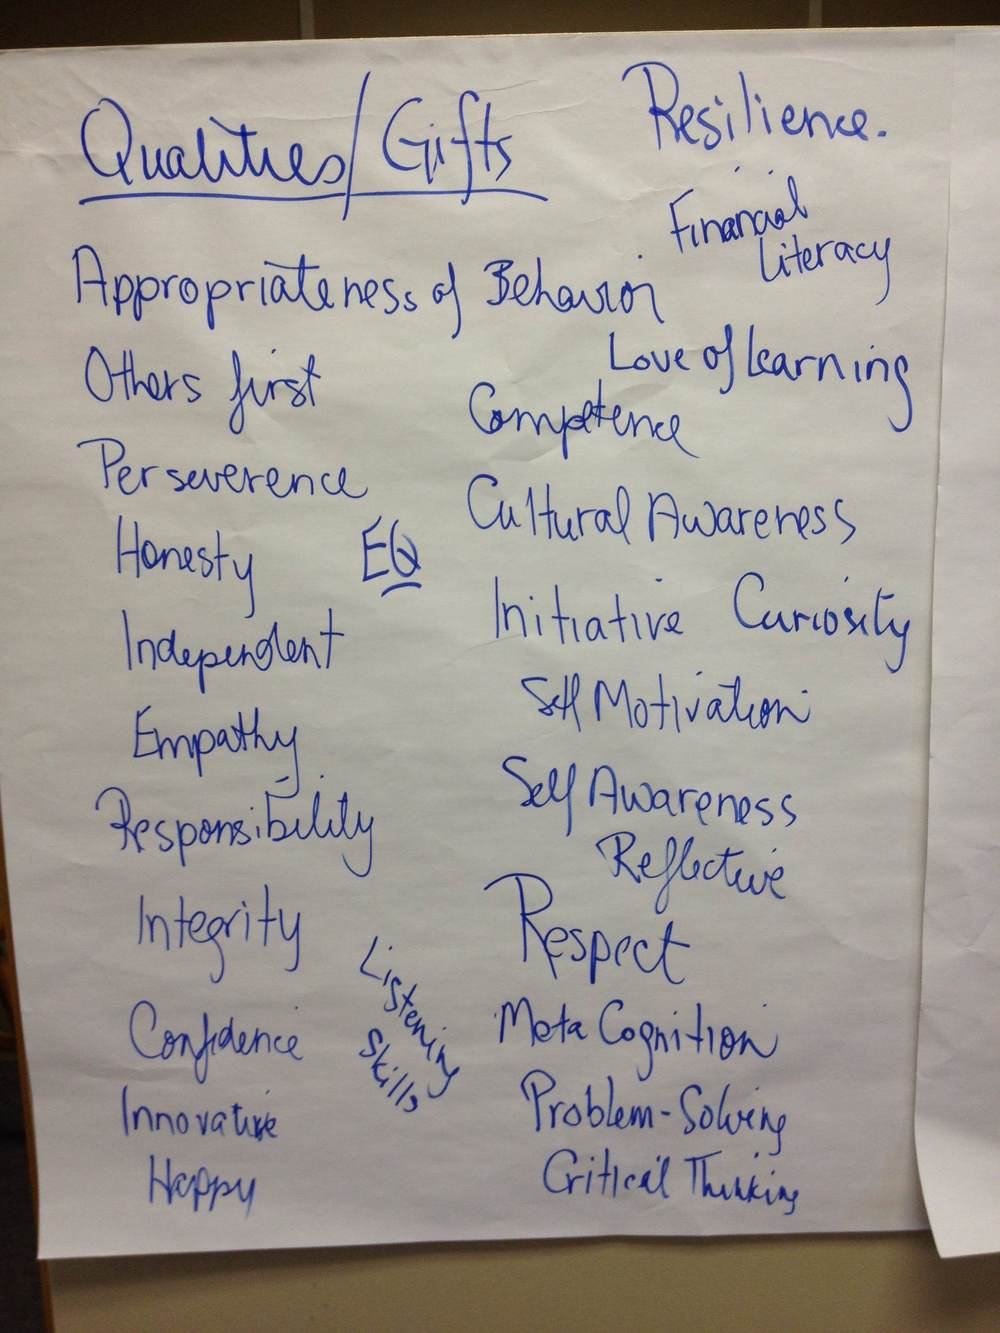 The qualities and gifts we want to teach our students.